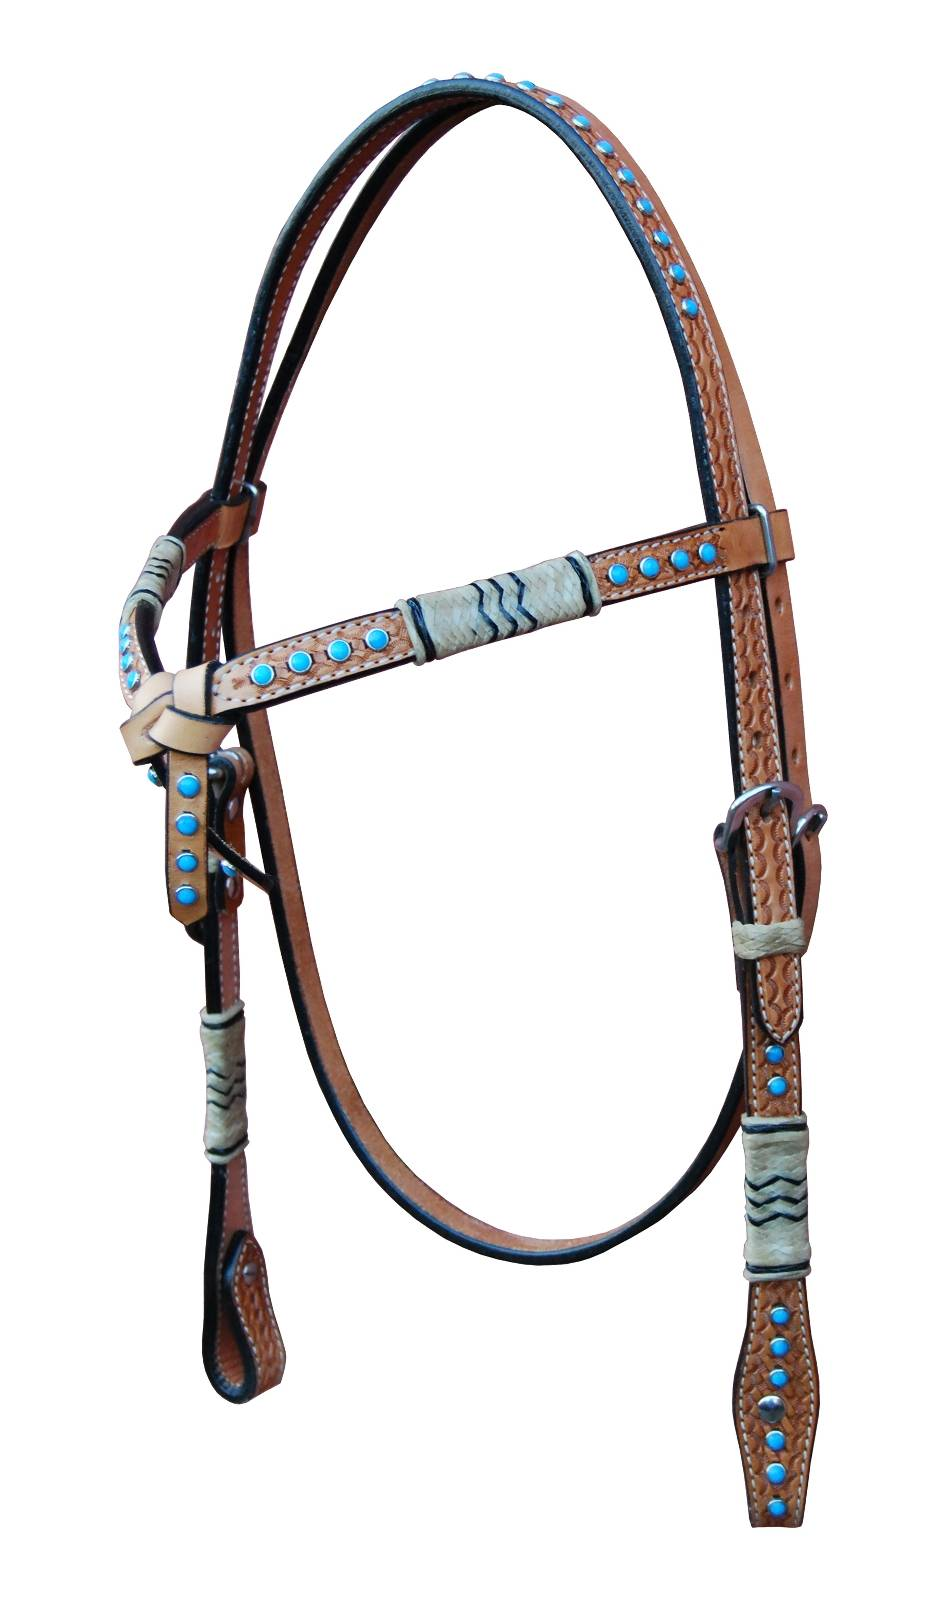 Turn-Two Knotted Headstall - Tucson